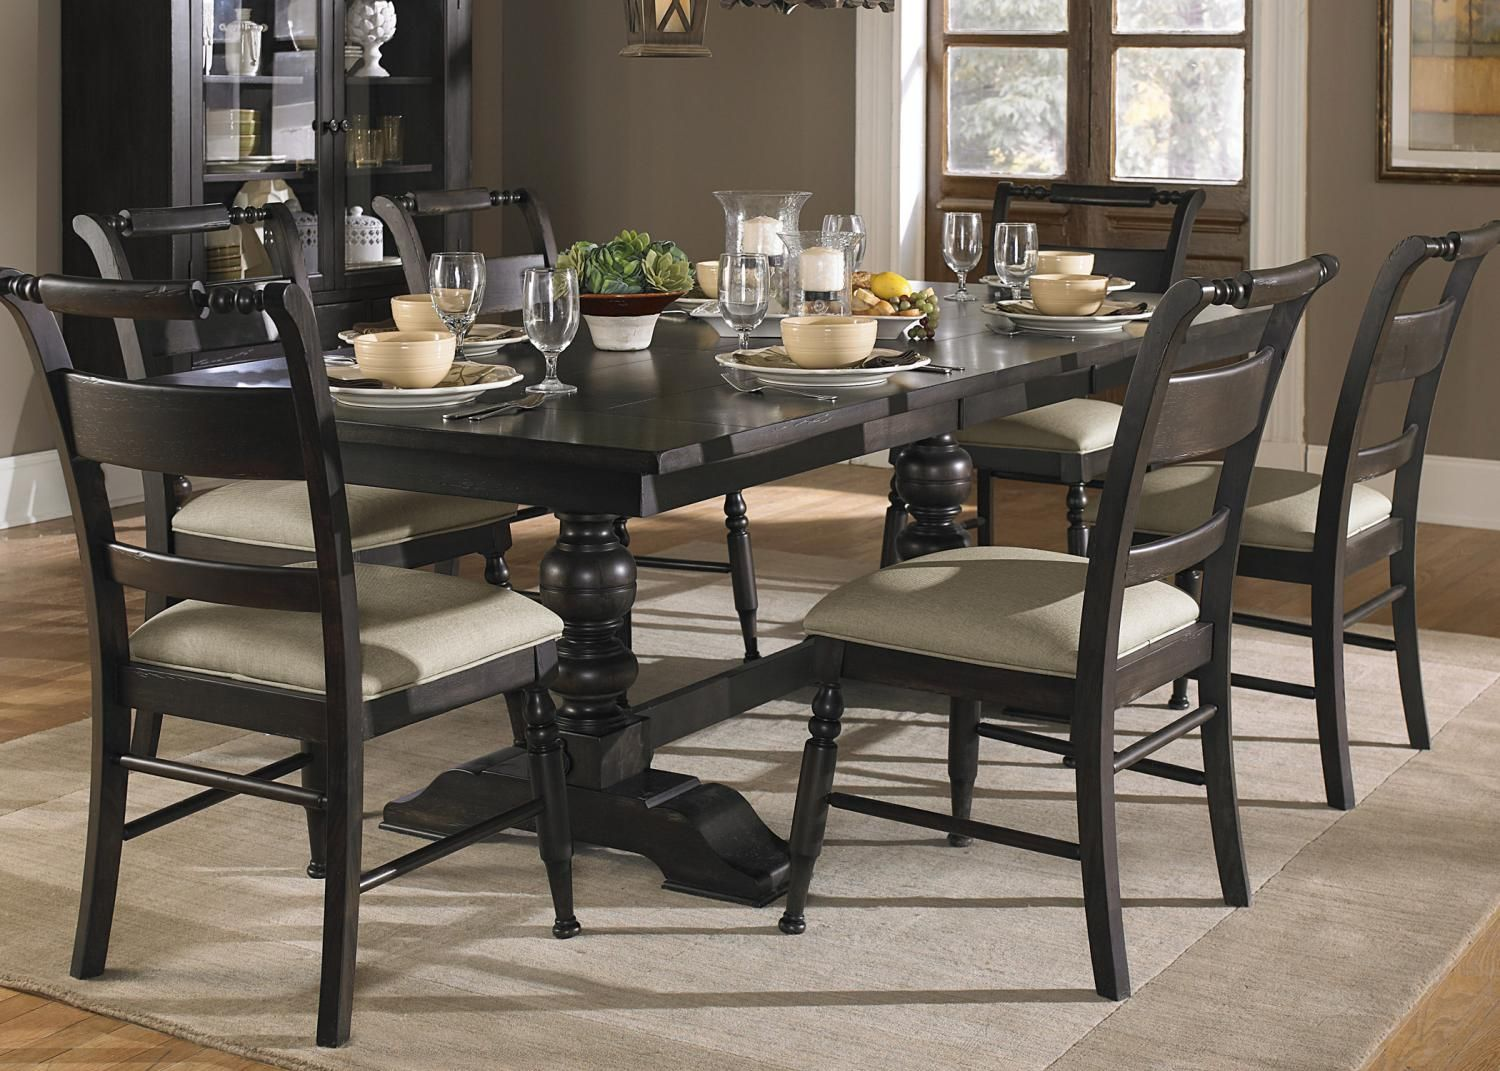 661 T4294 Liberty Black Cherry Trestle Table Black Cherry Big Sandy Superstores Dining Table Black Dark Wood Dining Room Wood Dining Room